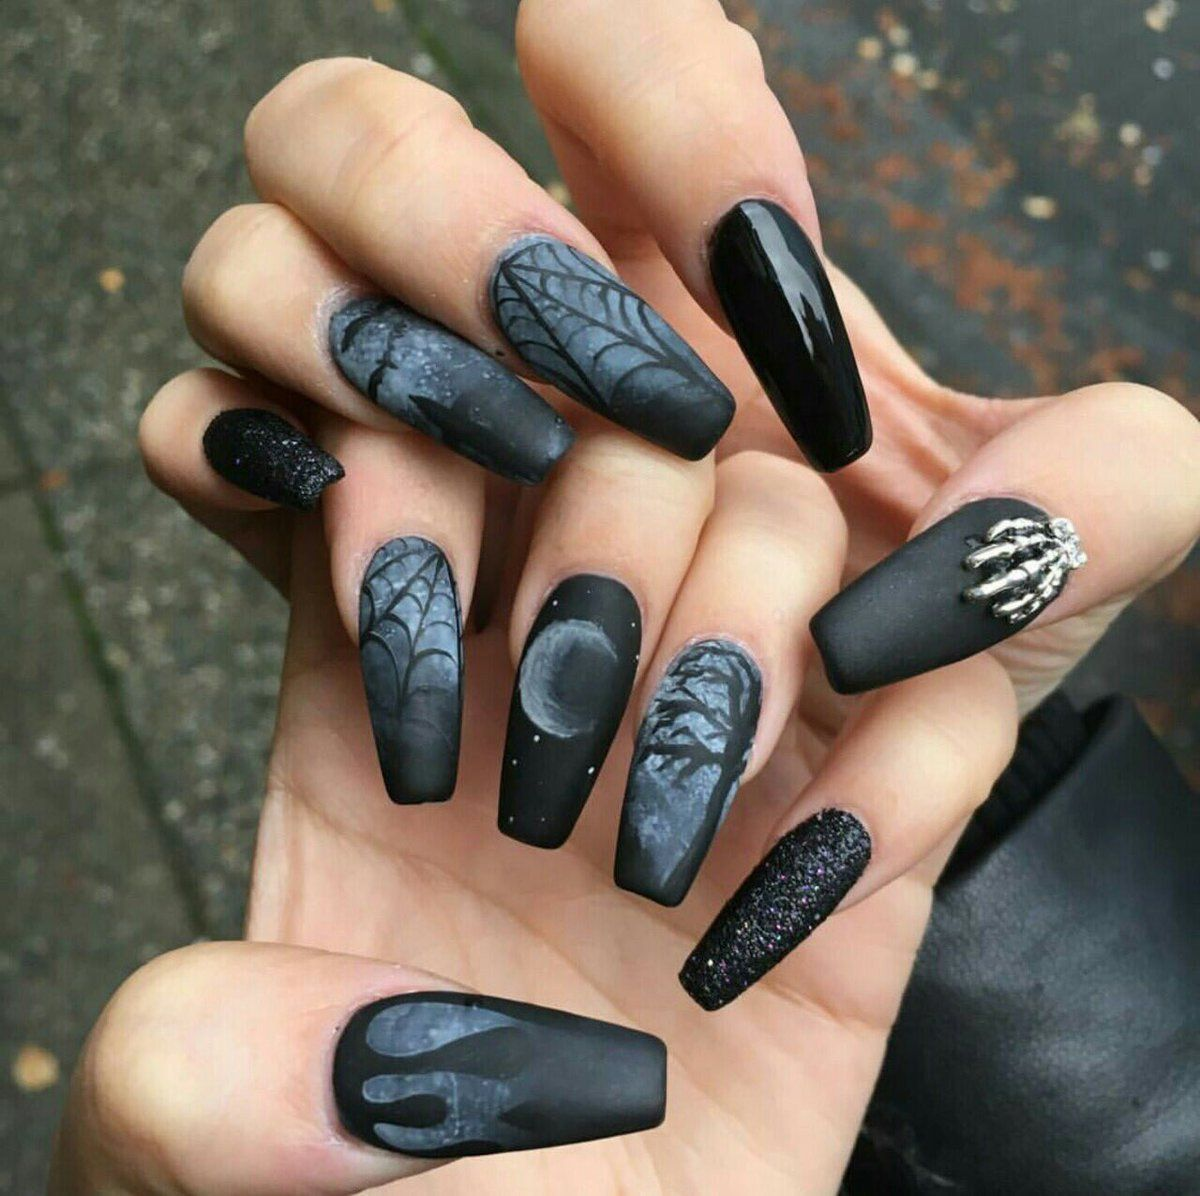 Black Matte And Glossy Nails With Goth Decoration Nail Art Polish Stickers Designs Gel Pedicure